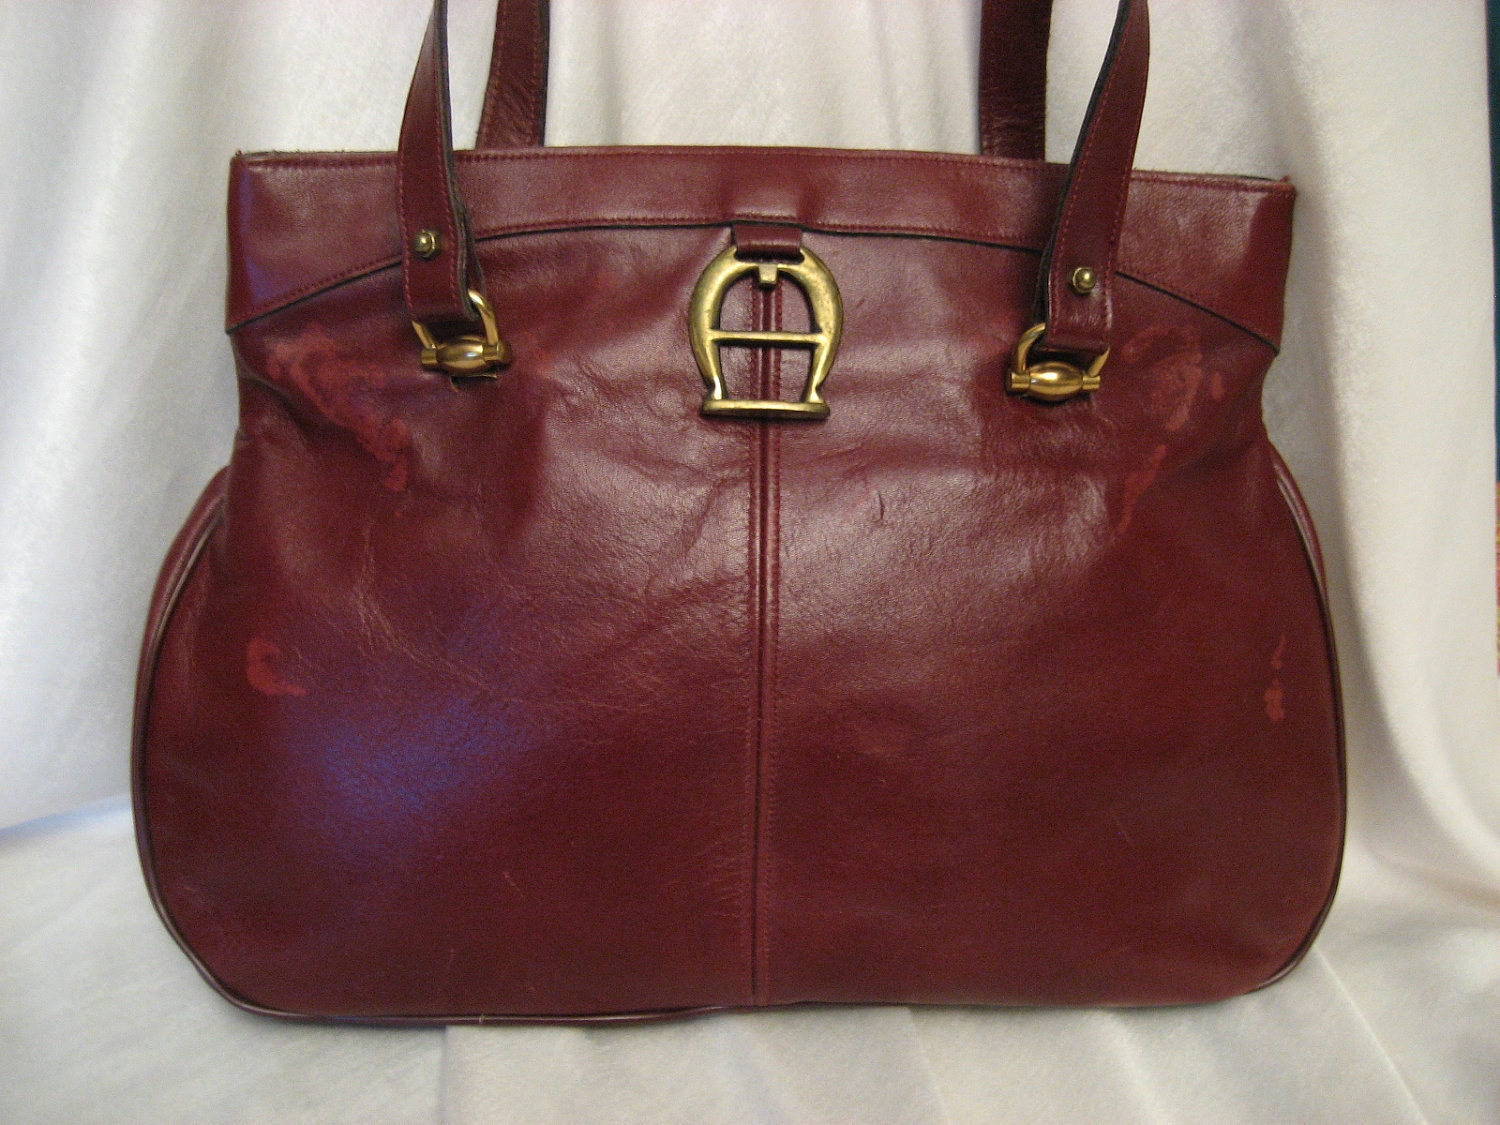 Vintage Etienne Aigner Leather Handbag Purse